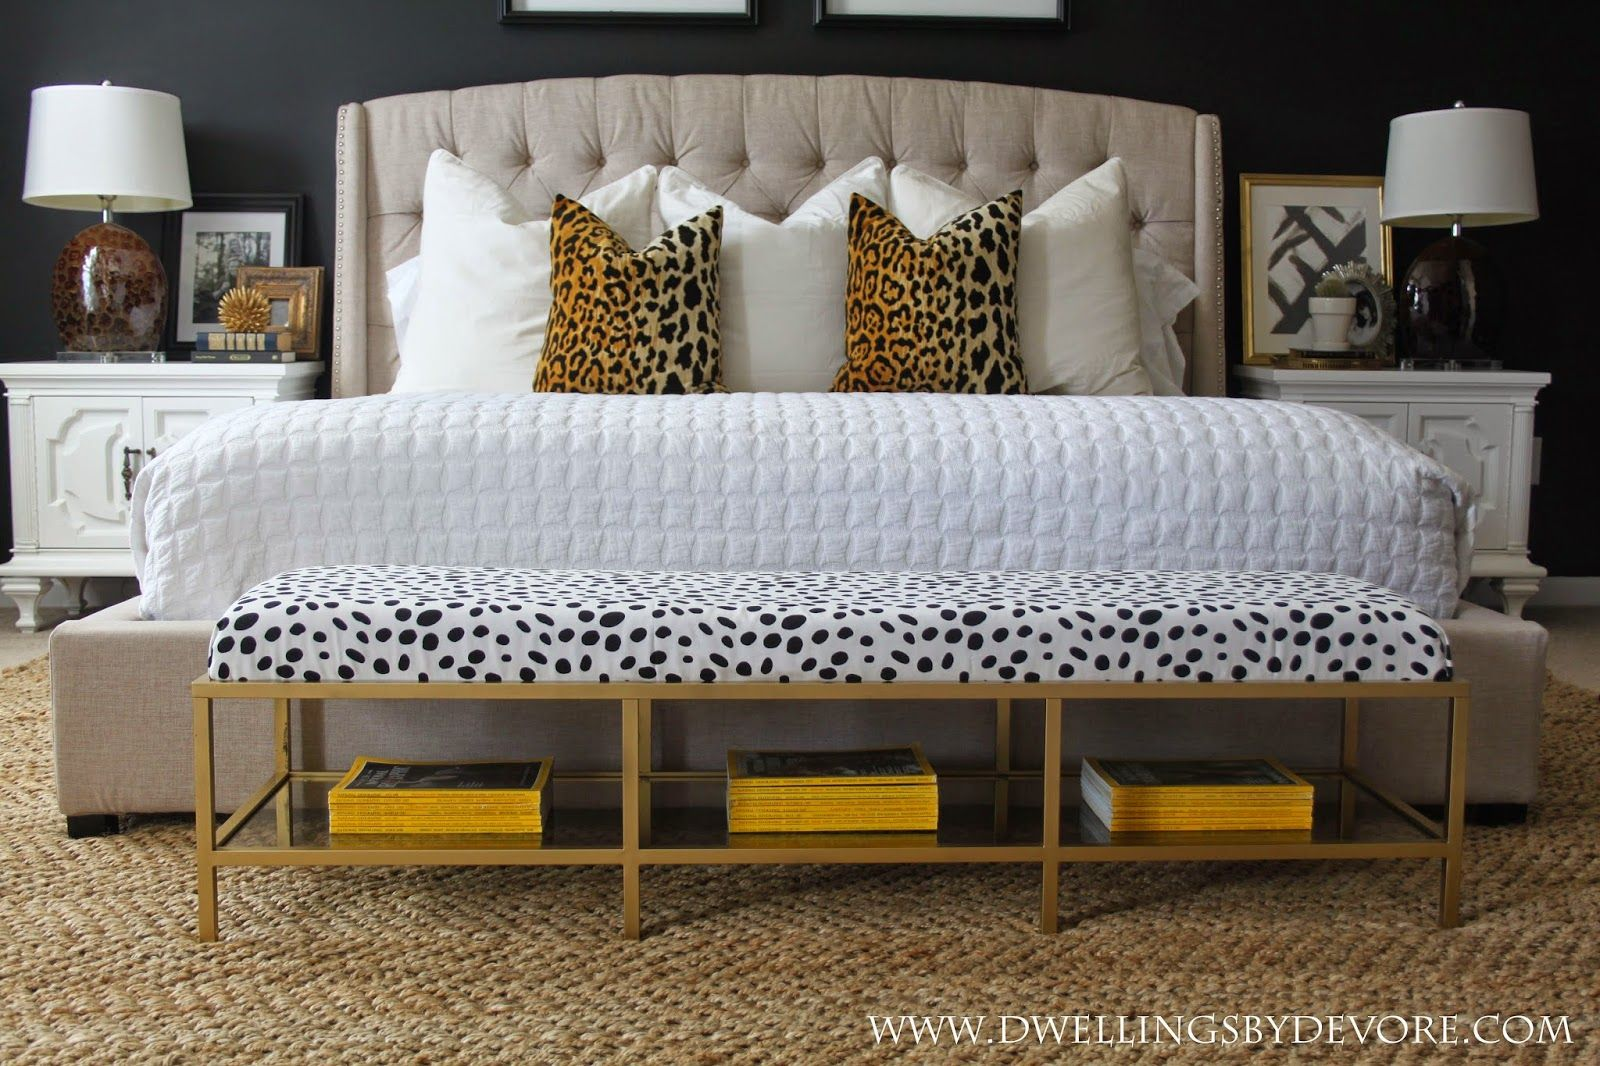 One Of My Favorite Elements From Our Master Bedroom Room Makeover Is This Bench I Wanted Something With A Met Furniture Hacks Ikea Hack Bedroom Bedroom Diy